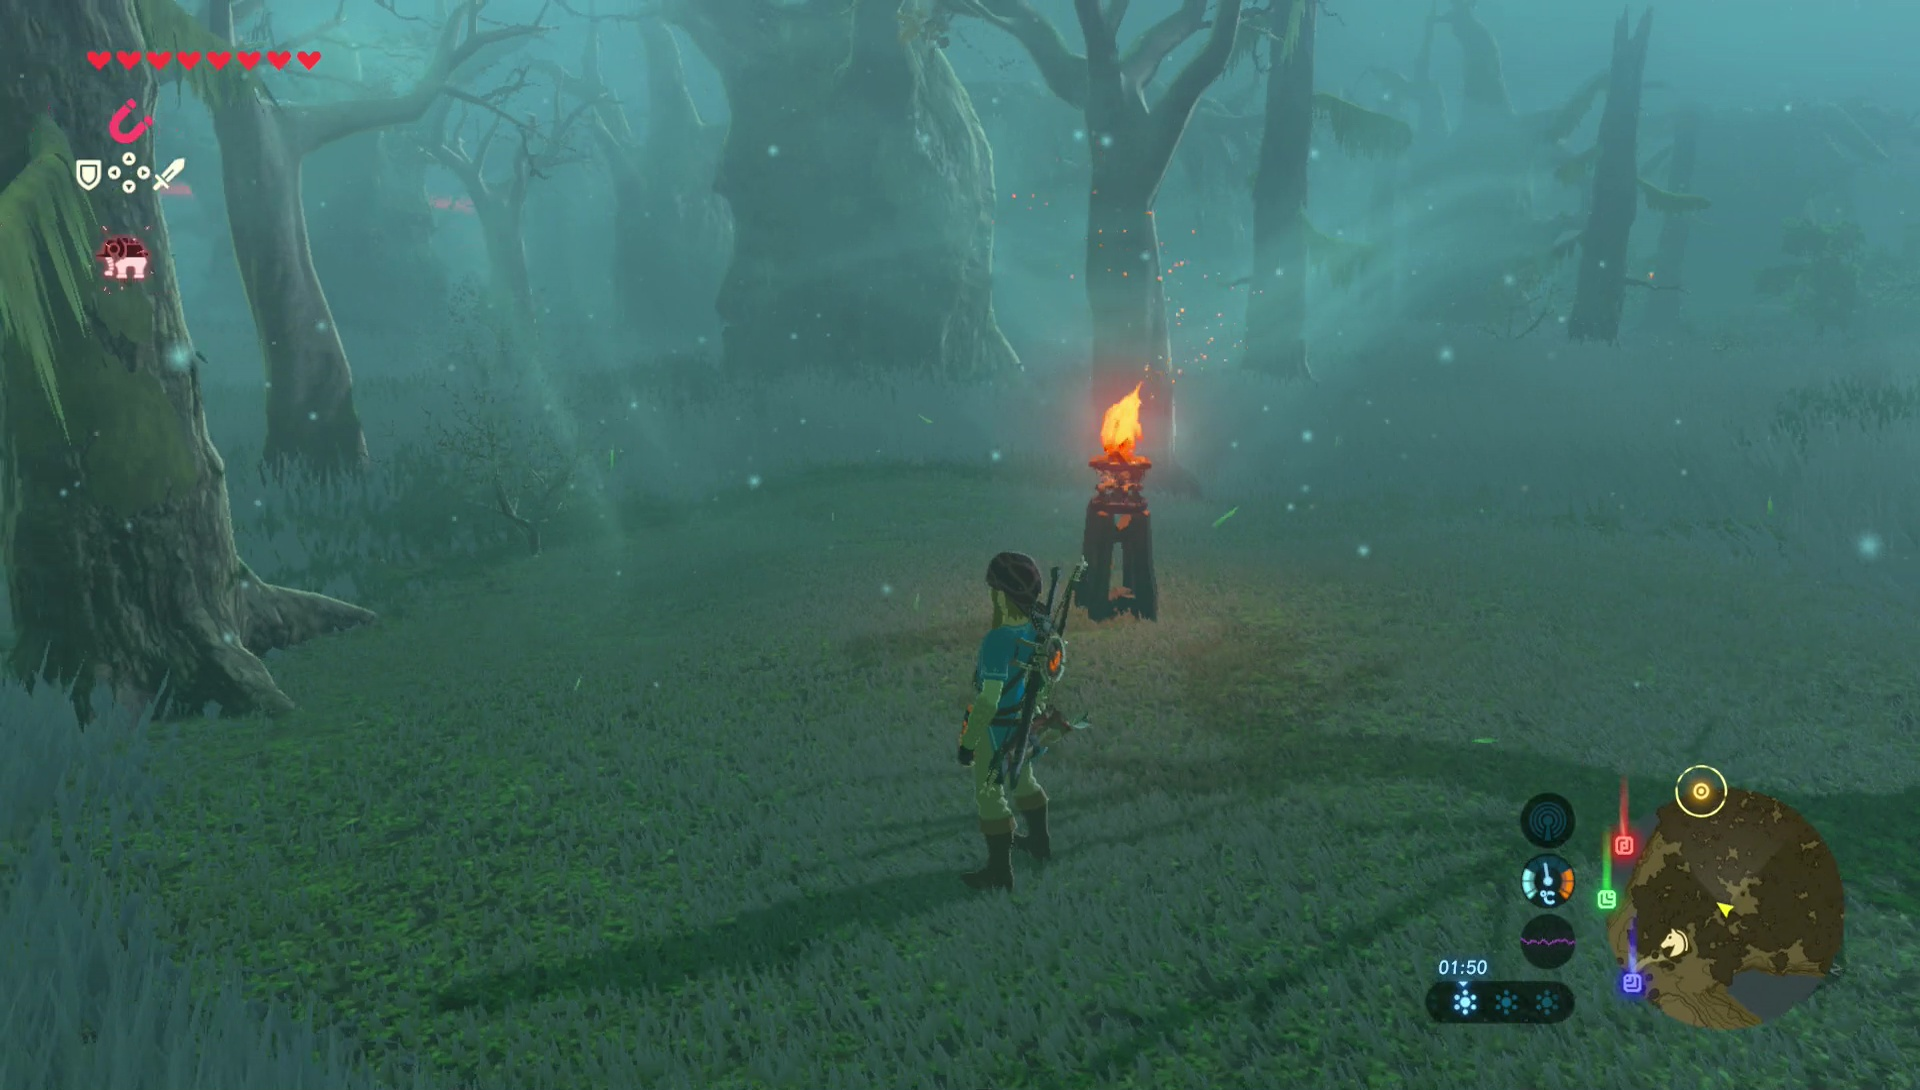 How to Find the Master Sword in Breath of the Wild - Paste